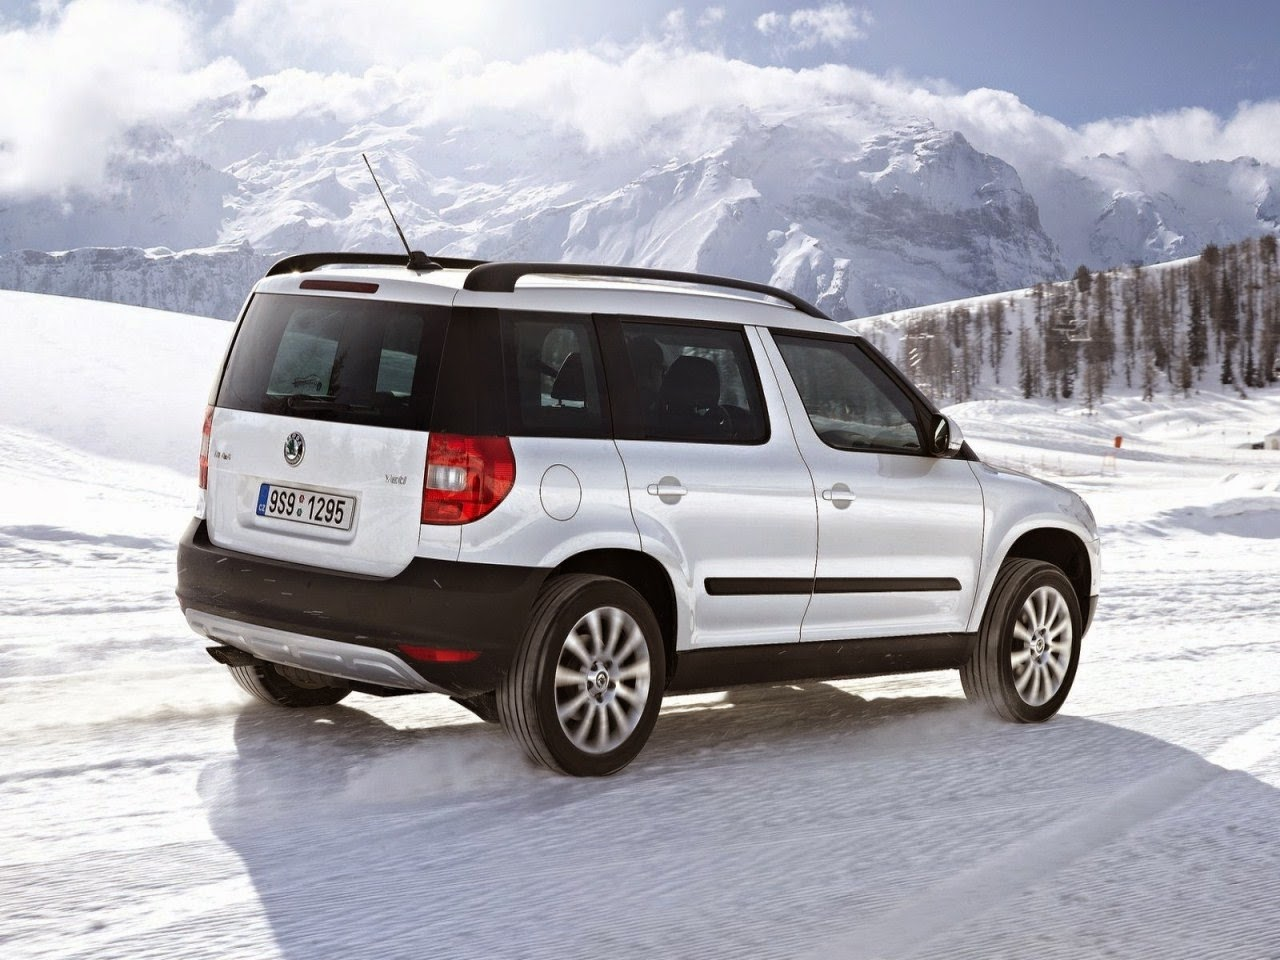 2015 skoda yeti pictures car features pictures prices review. Black Bedroom Furniture Sets. Home Design Ideas